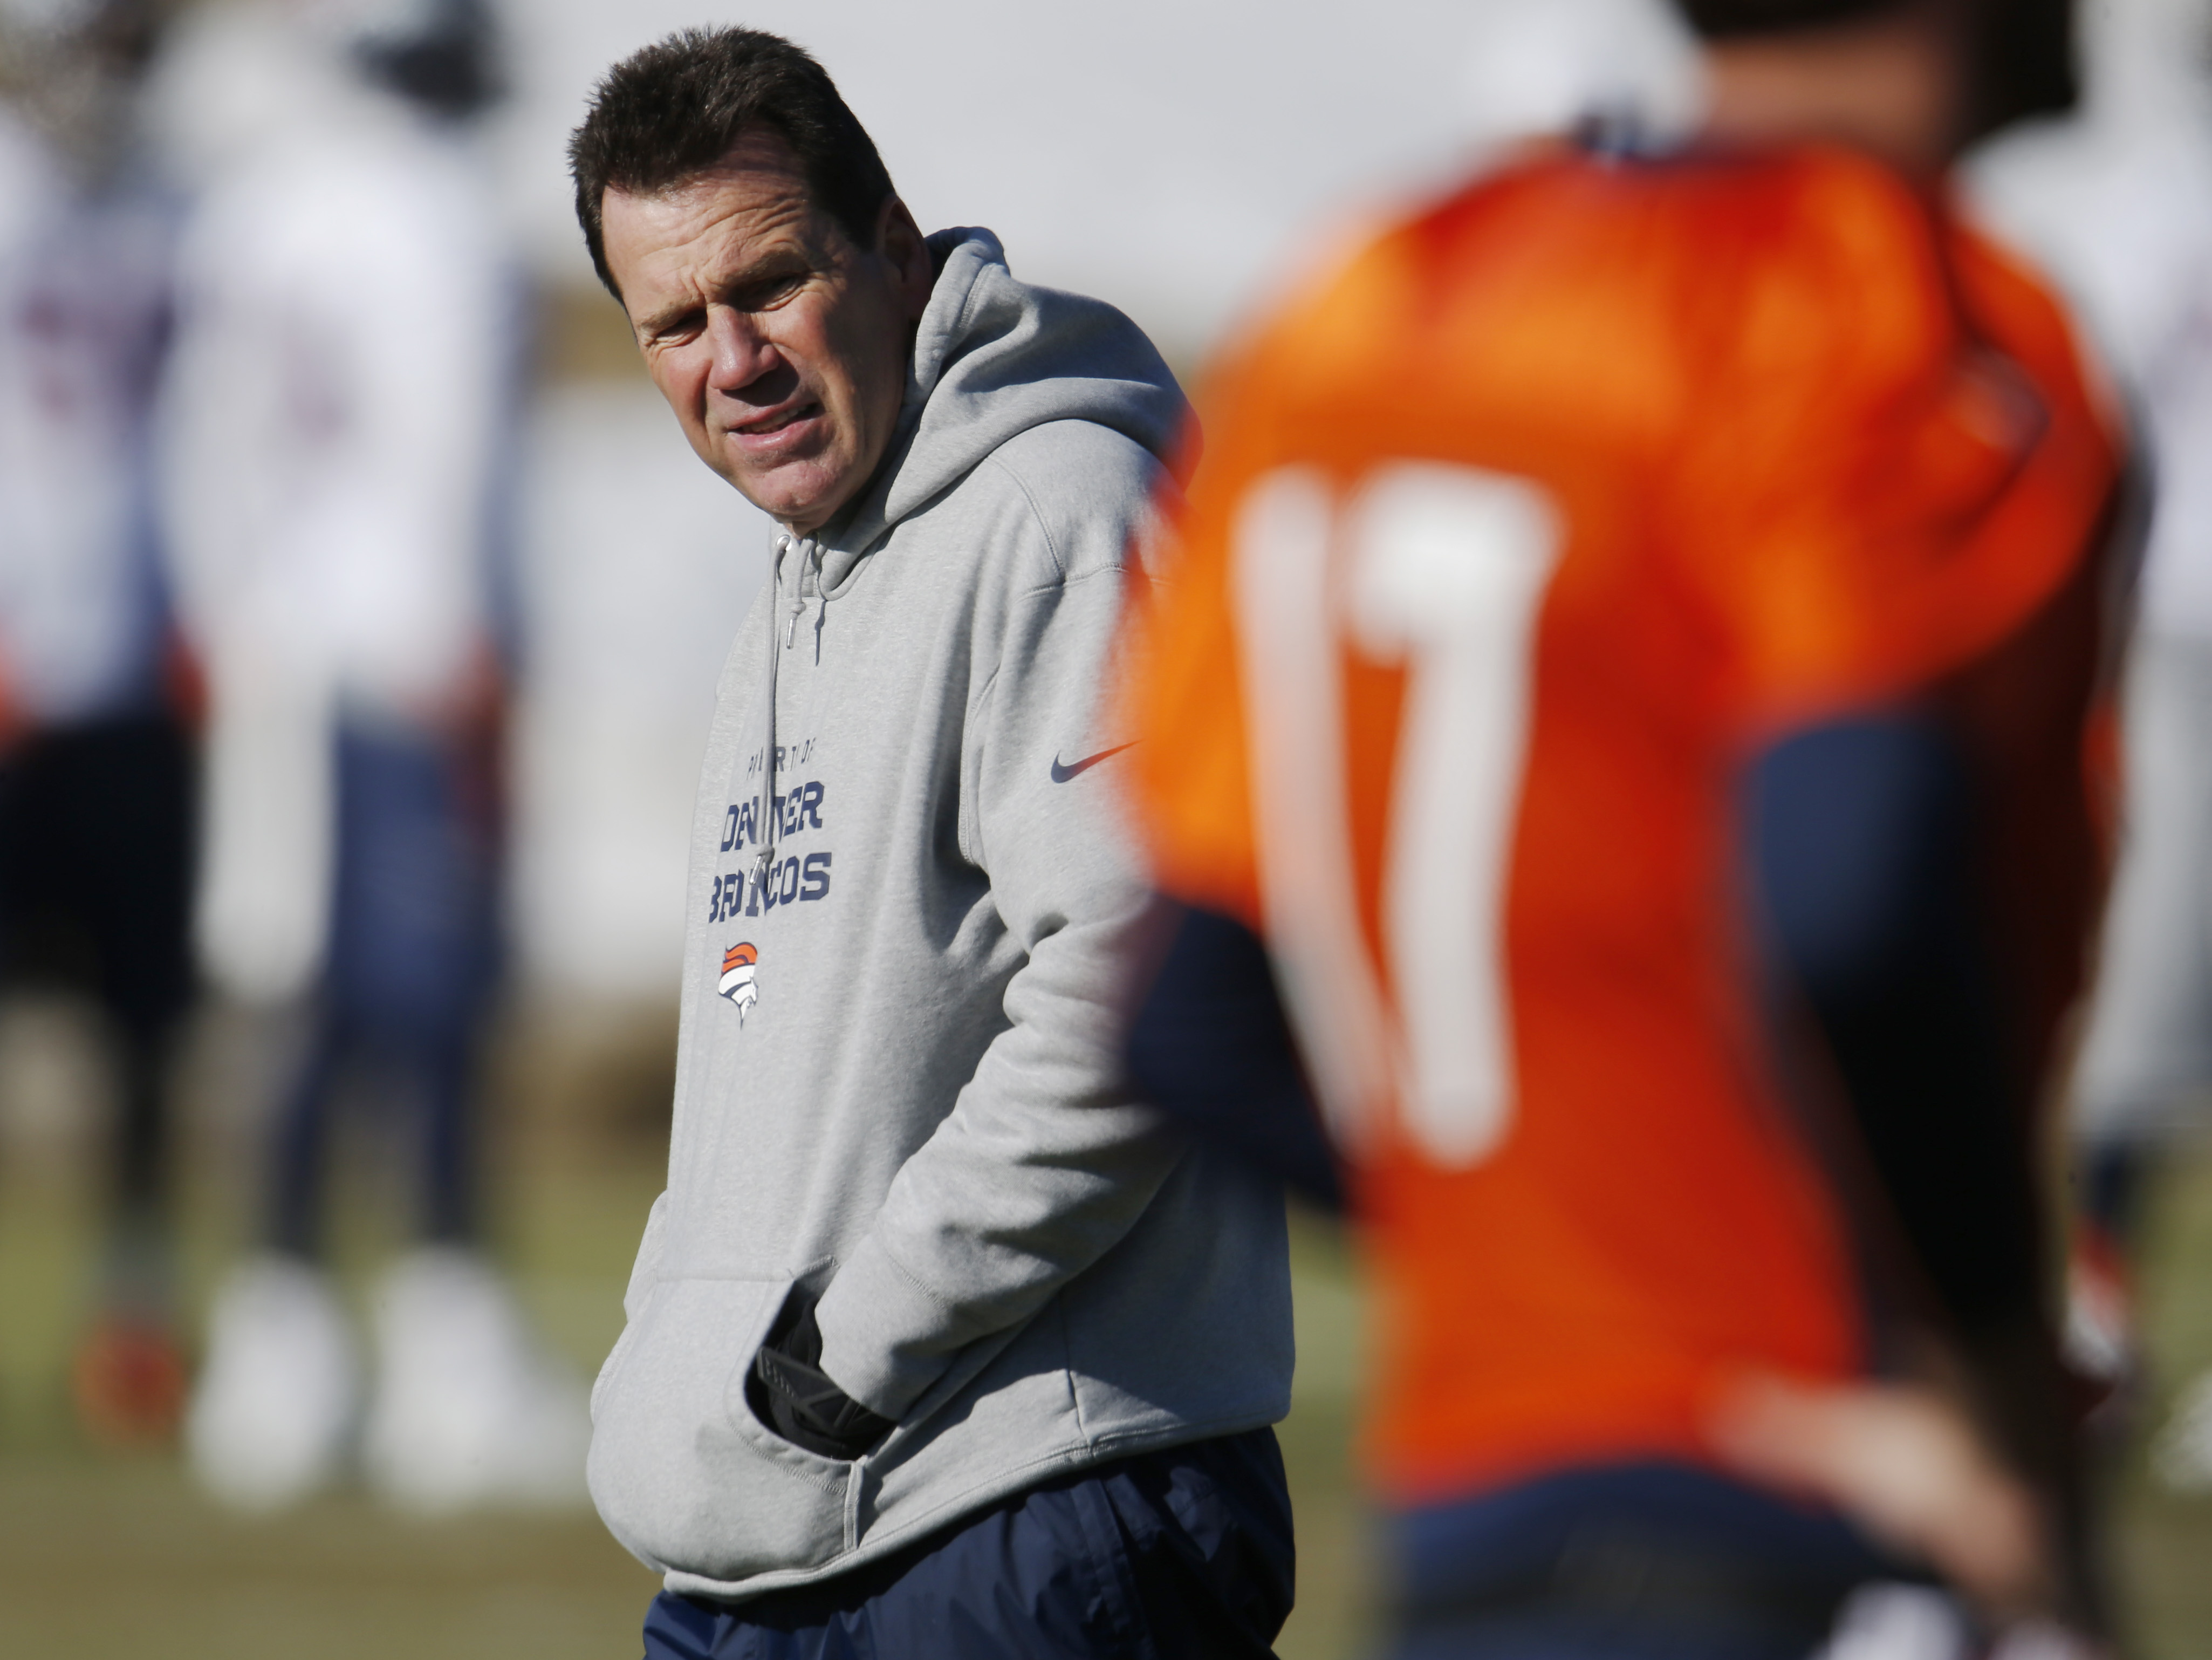 FILE - In this Dec. 23, 2015, file photo, Denver Broncos head coach Gary Kubiak, back, casts ay eye toward quarterback Brock Osweiler during an NFL football practice in Englewood, Colo.  The Broncos settled on quarterback Peyton Manning. Certainly, Bronco